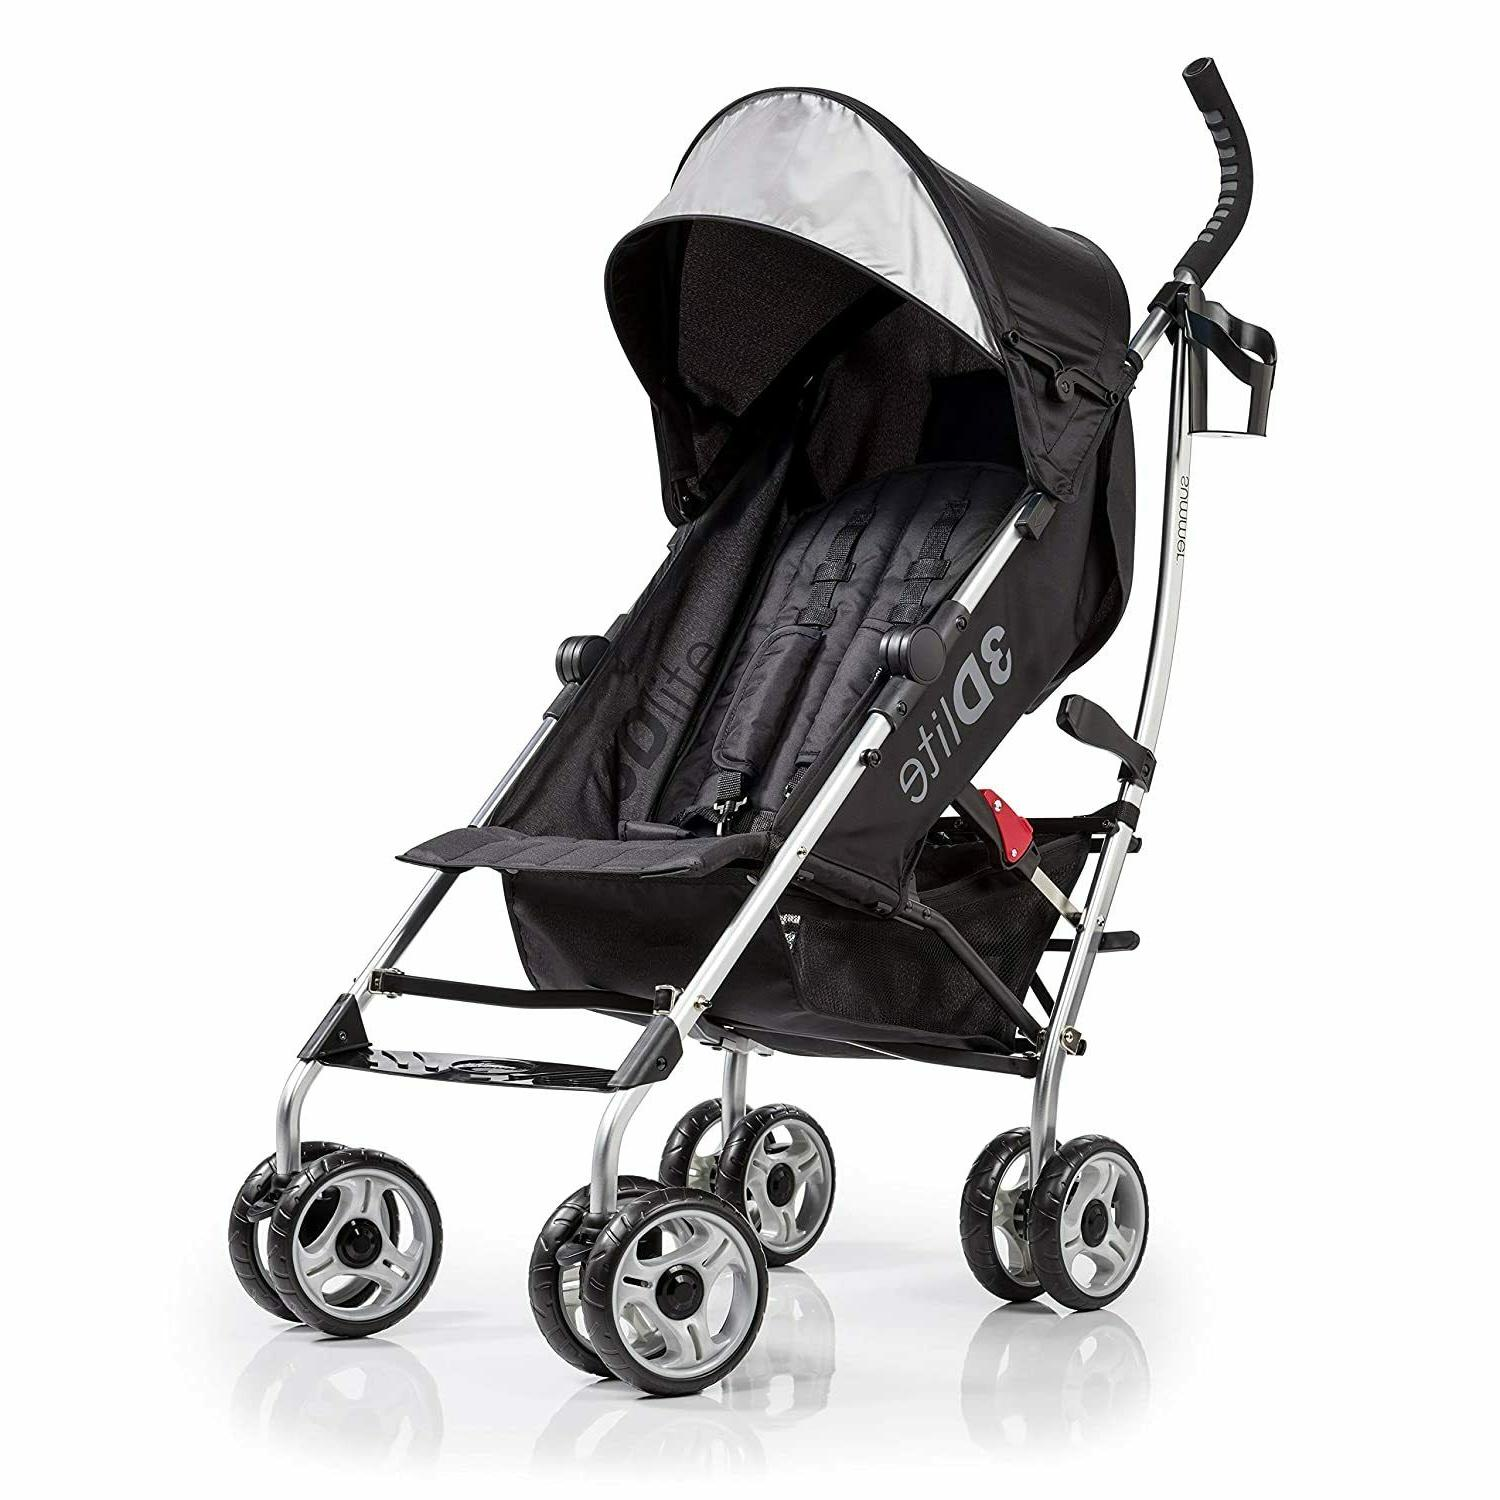 Convenience Black Baby Frame compact